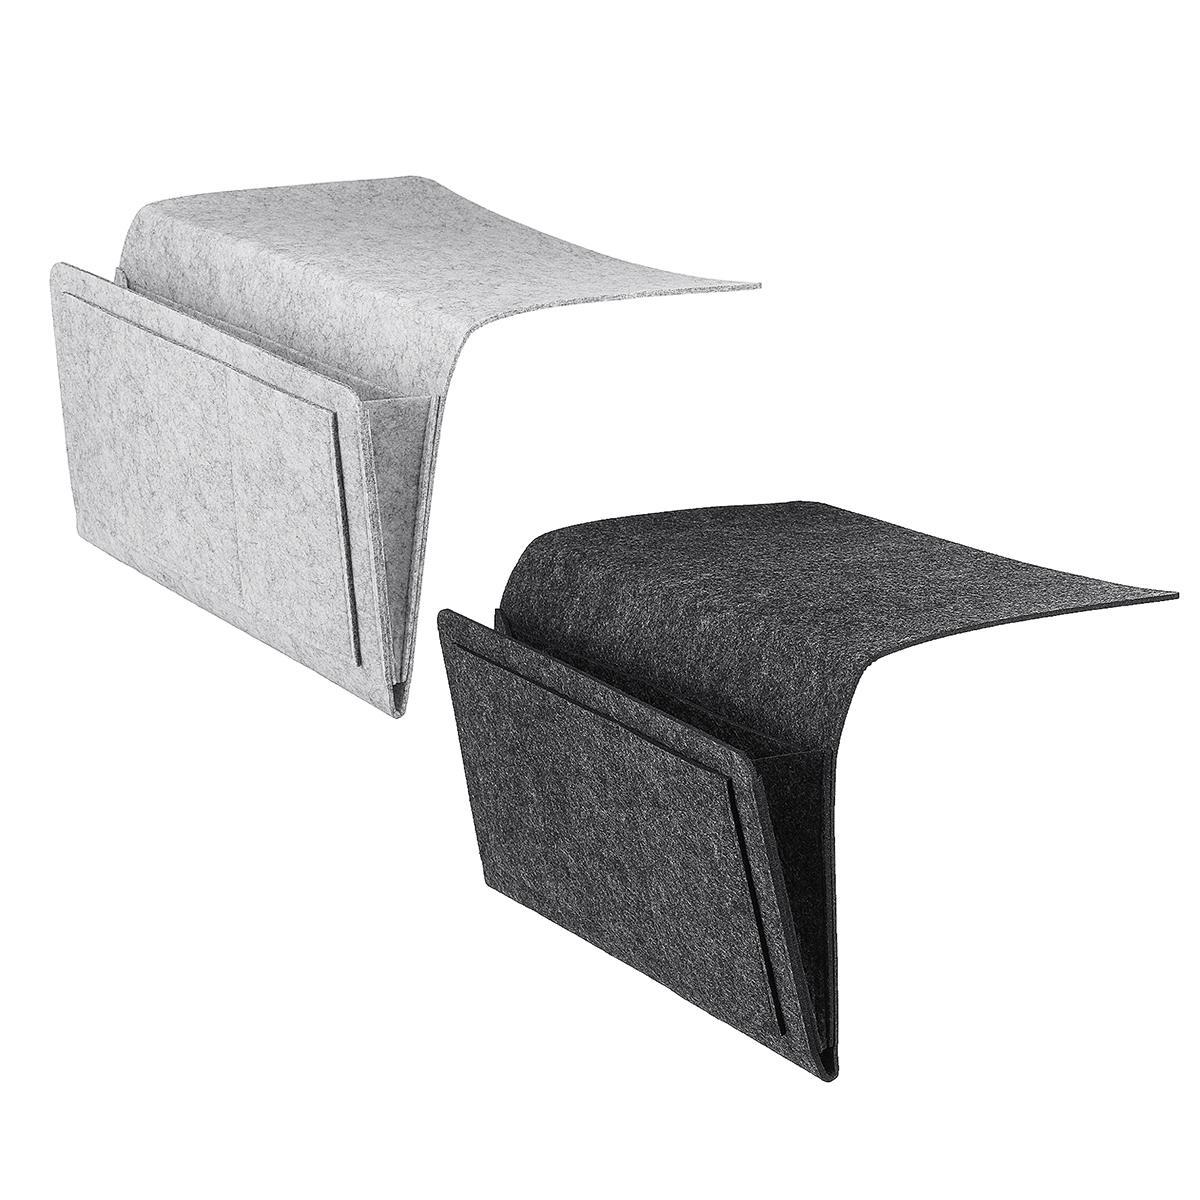 Bed Storage Bag <font><b>Sofa</b></font> Chair Arm Rest <font><b>Pocket</b></font> Organiser <font><b>Remote</b></font> Control Tablet PC Magazine Storage Felt anti dirty waterproof Fold image